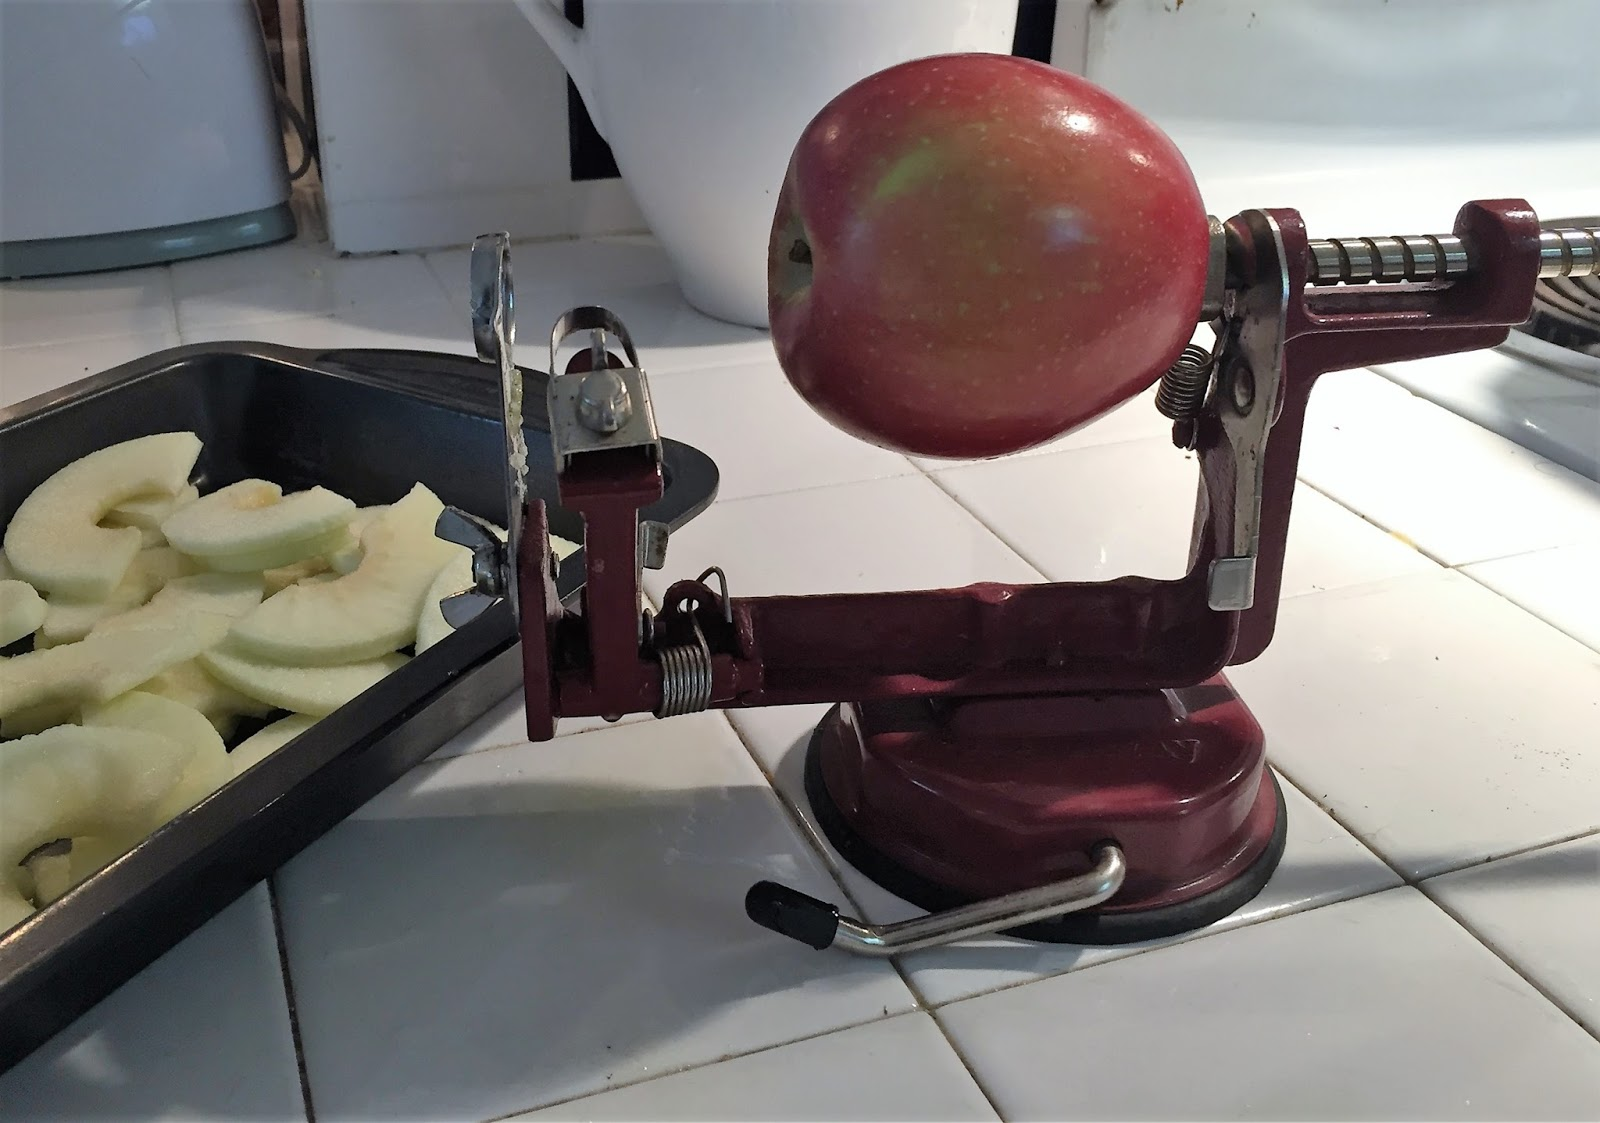 Fairwinds - Practical uses for the apple peels ...